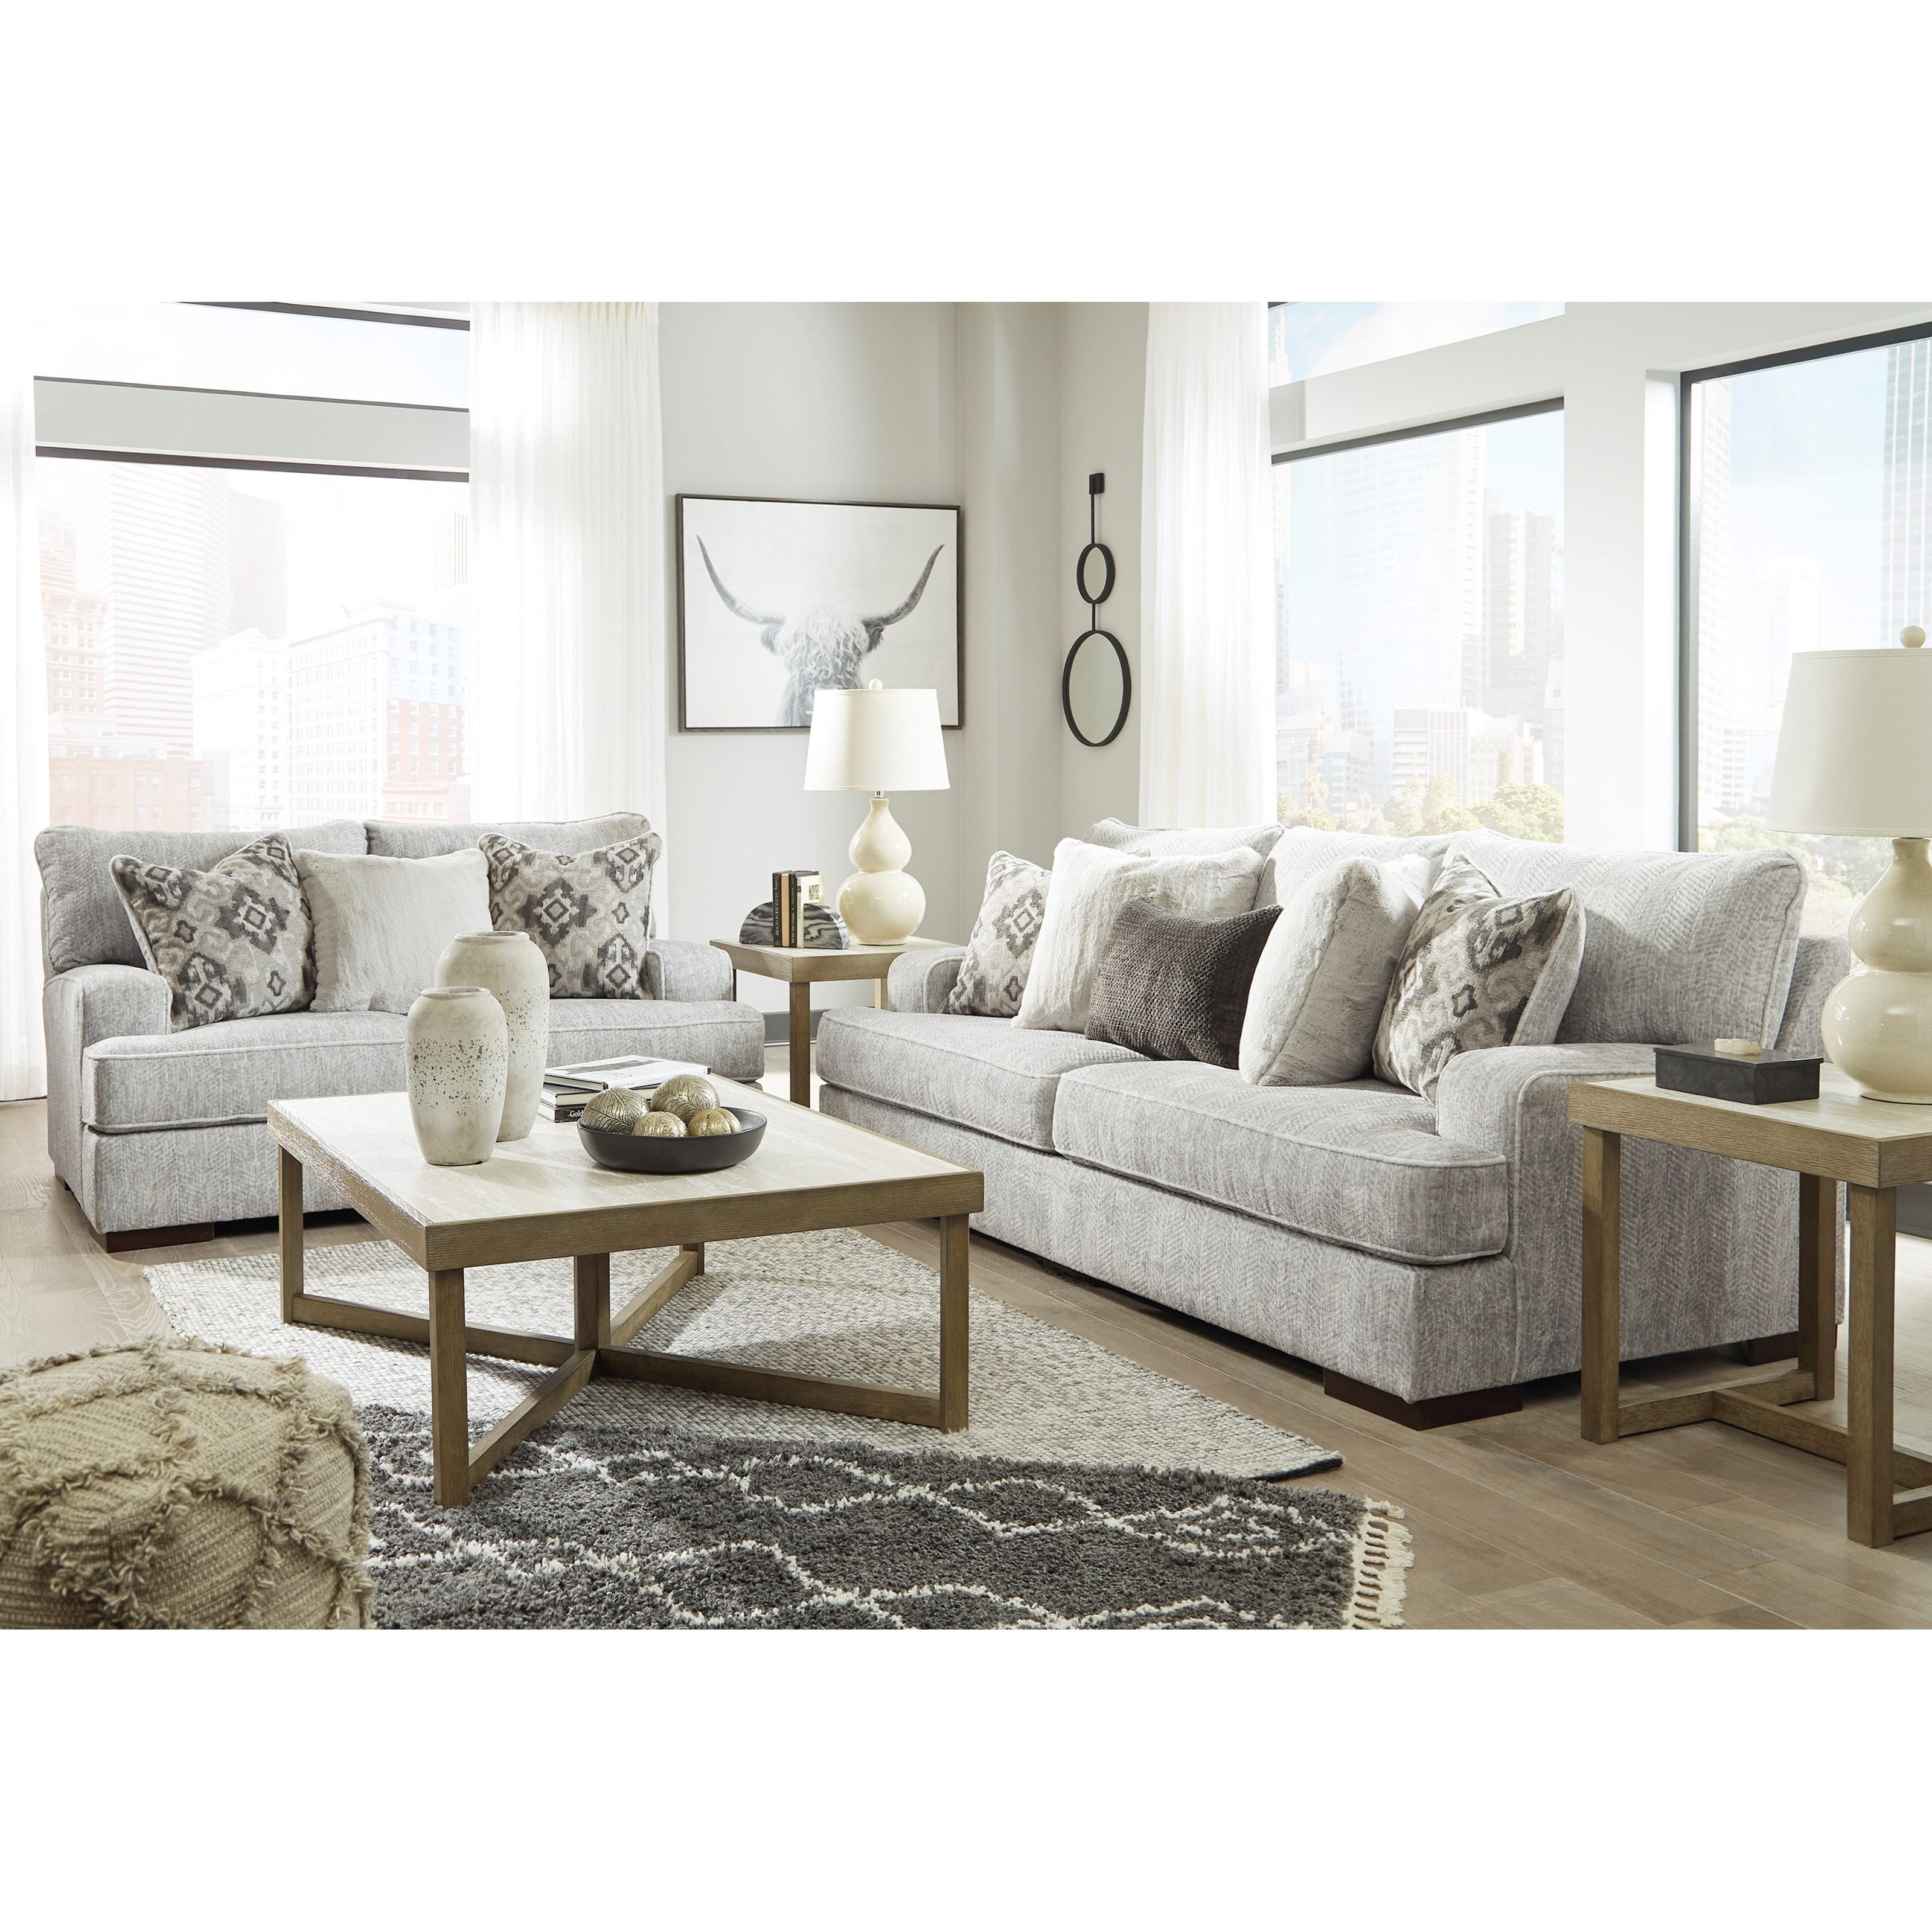 Mercado Sofa and Loveseat by Benchcraft at Value City Furniture